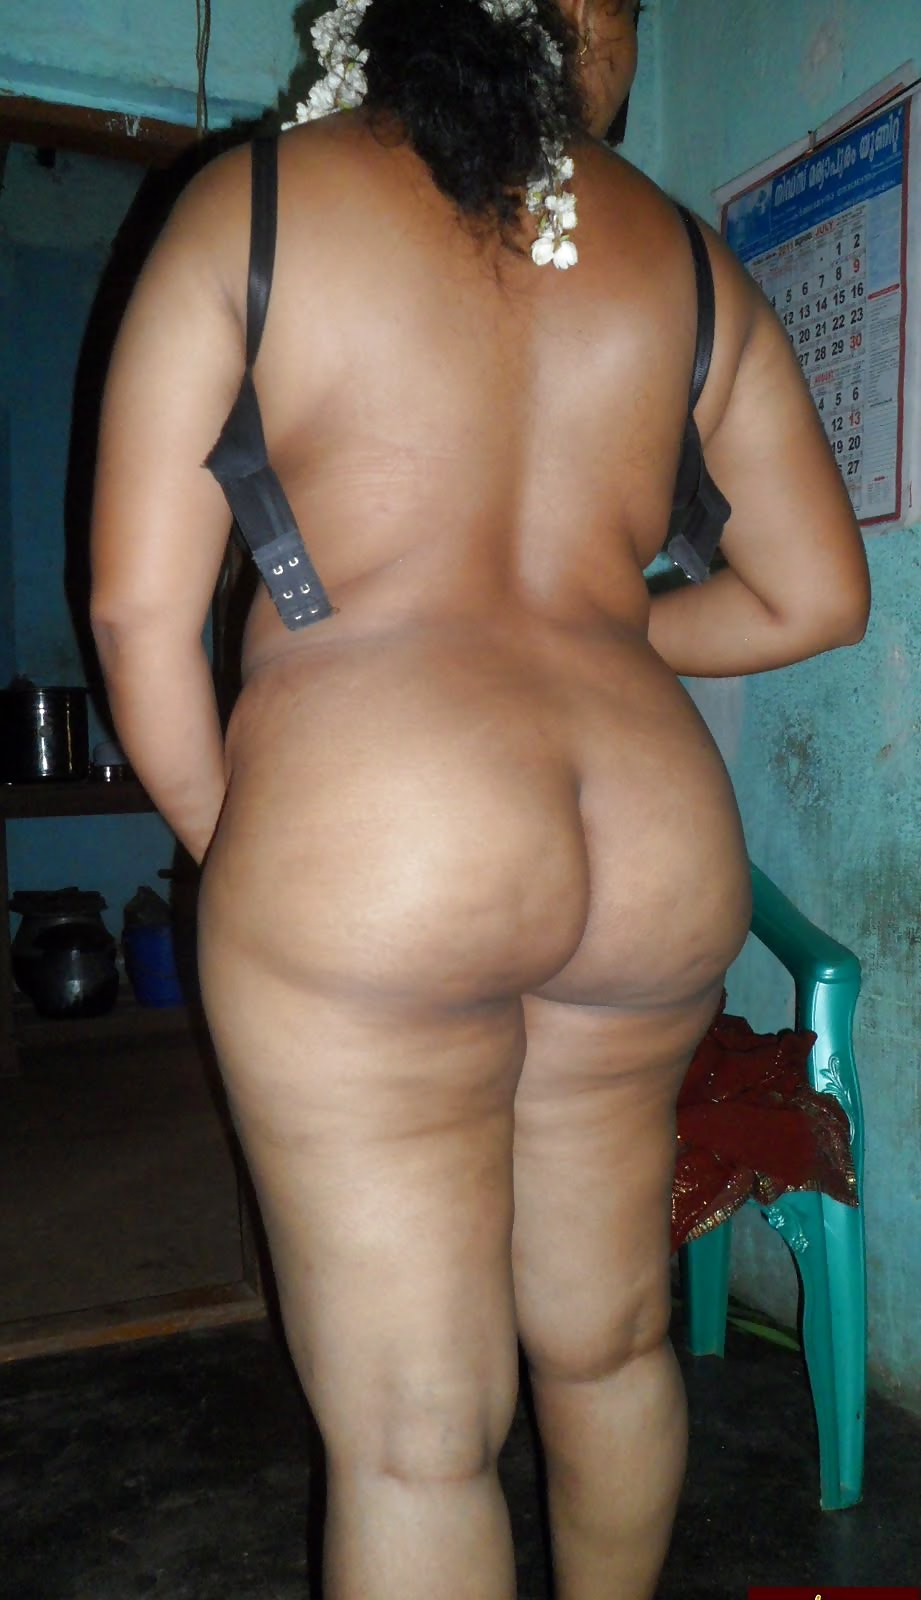 Indian old woman butt nudes pic, porn myself